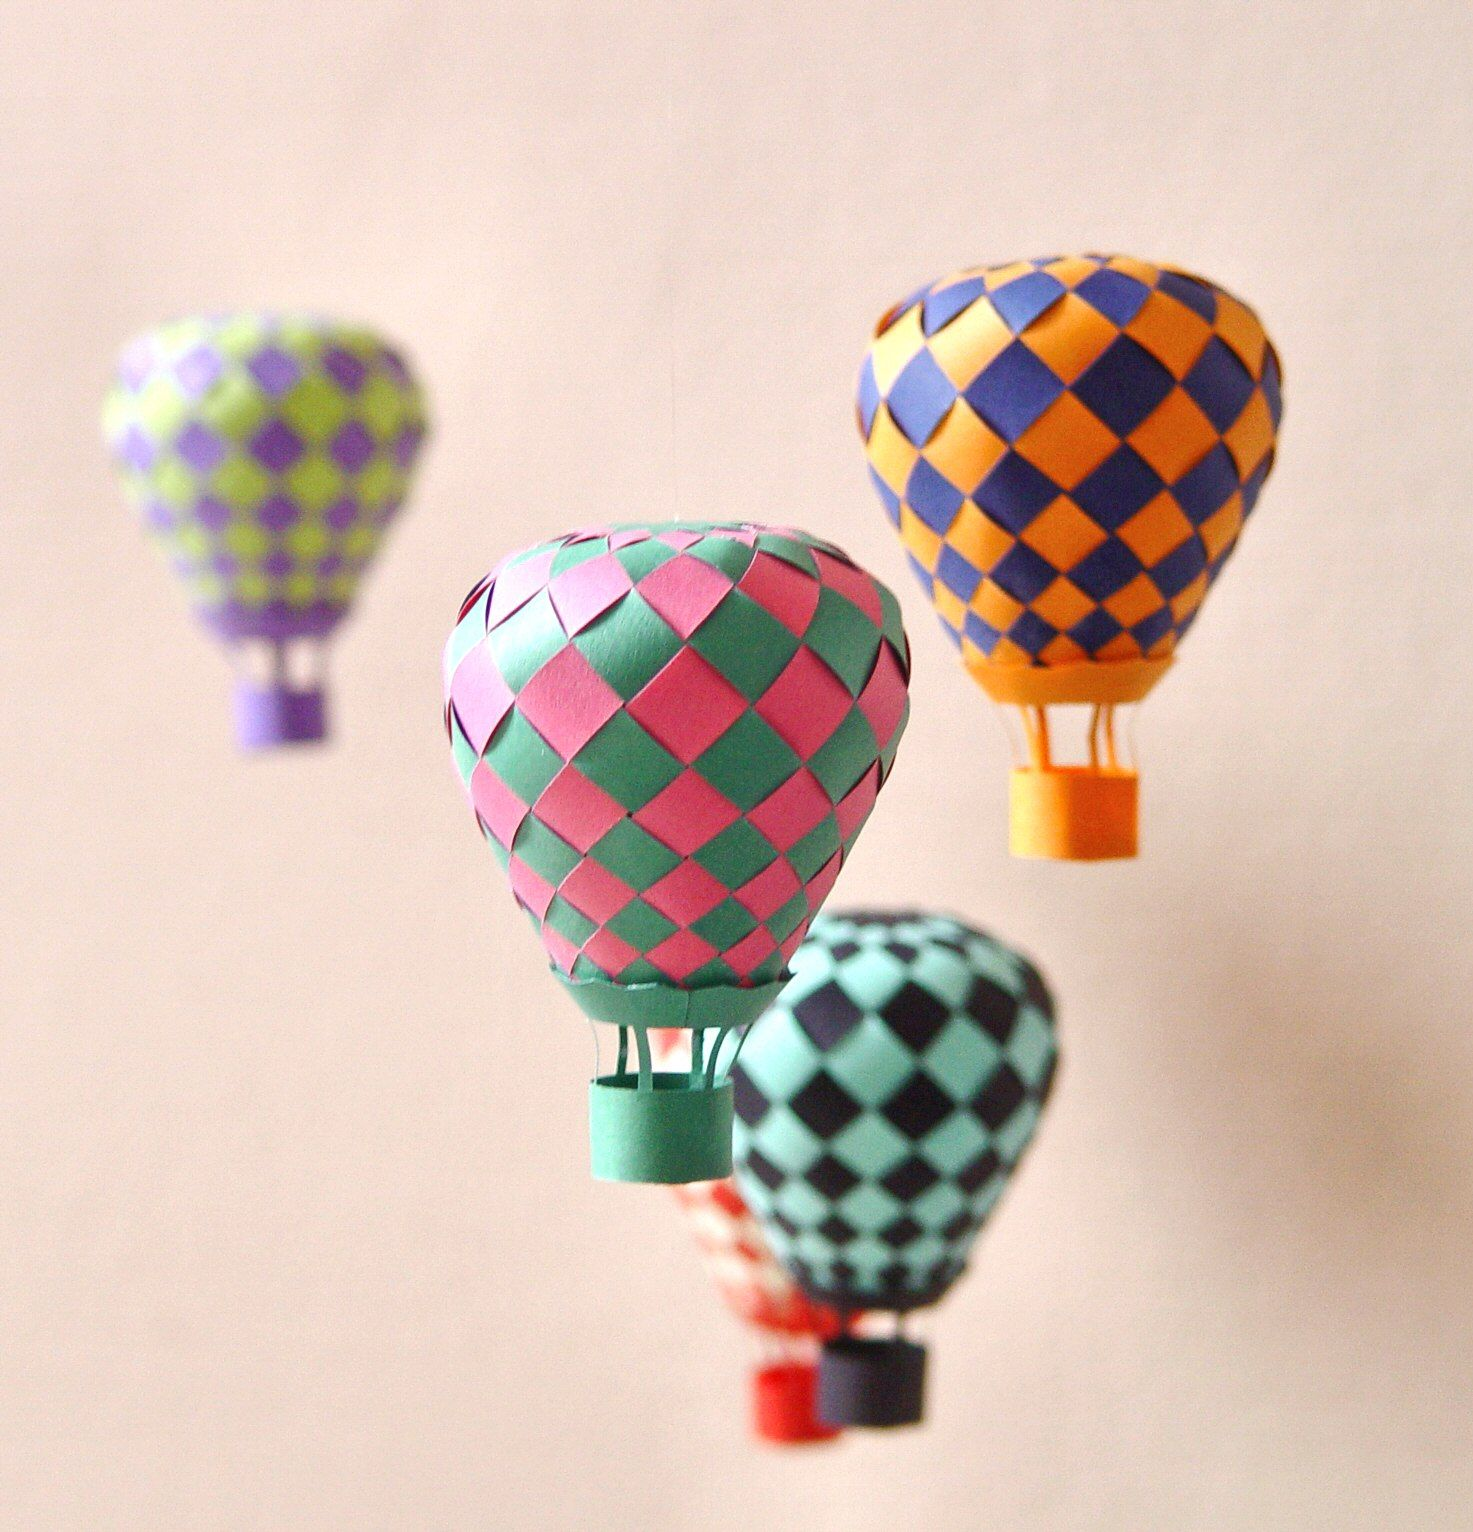 Extraordinary Creative Diy Paper Art Project Colorful Hot Air